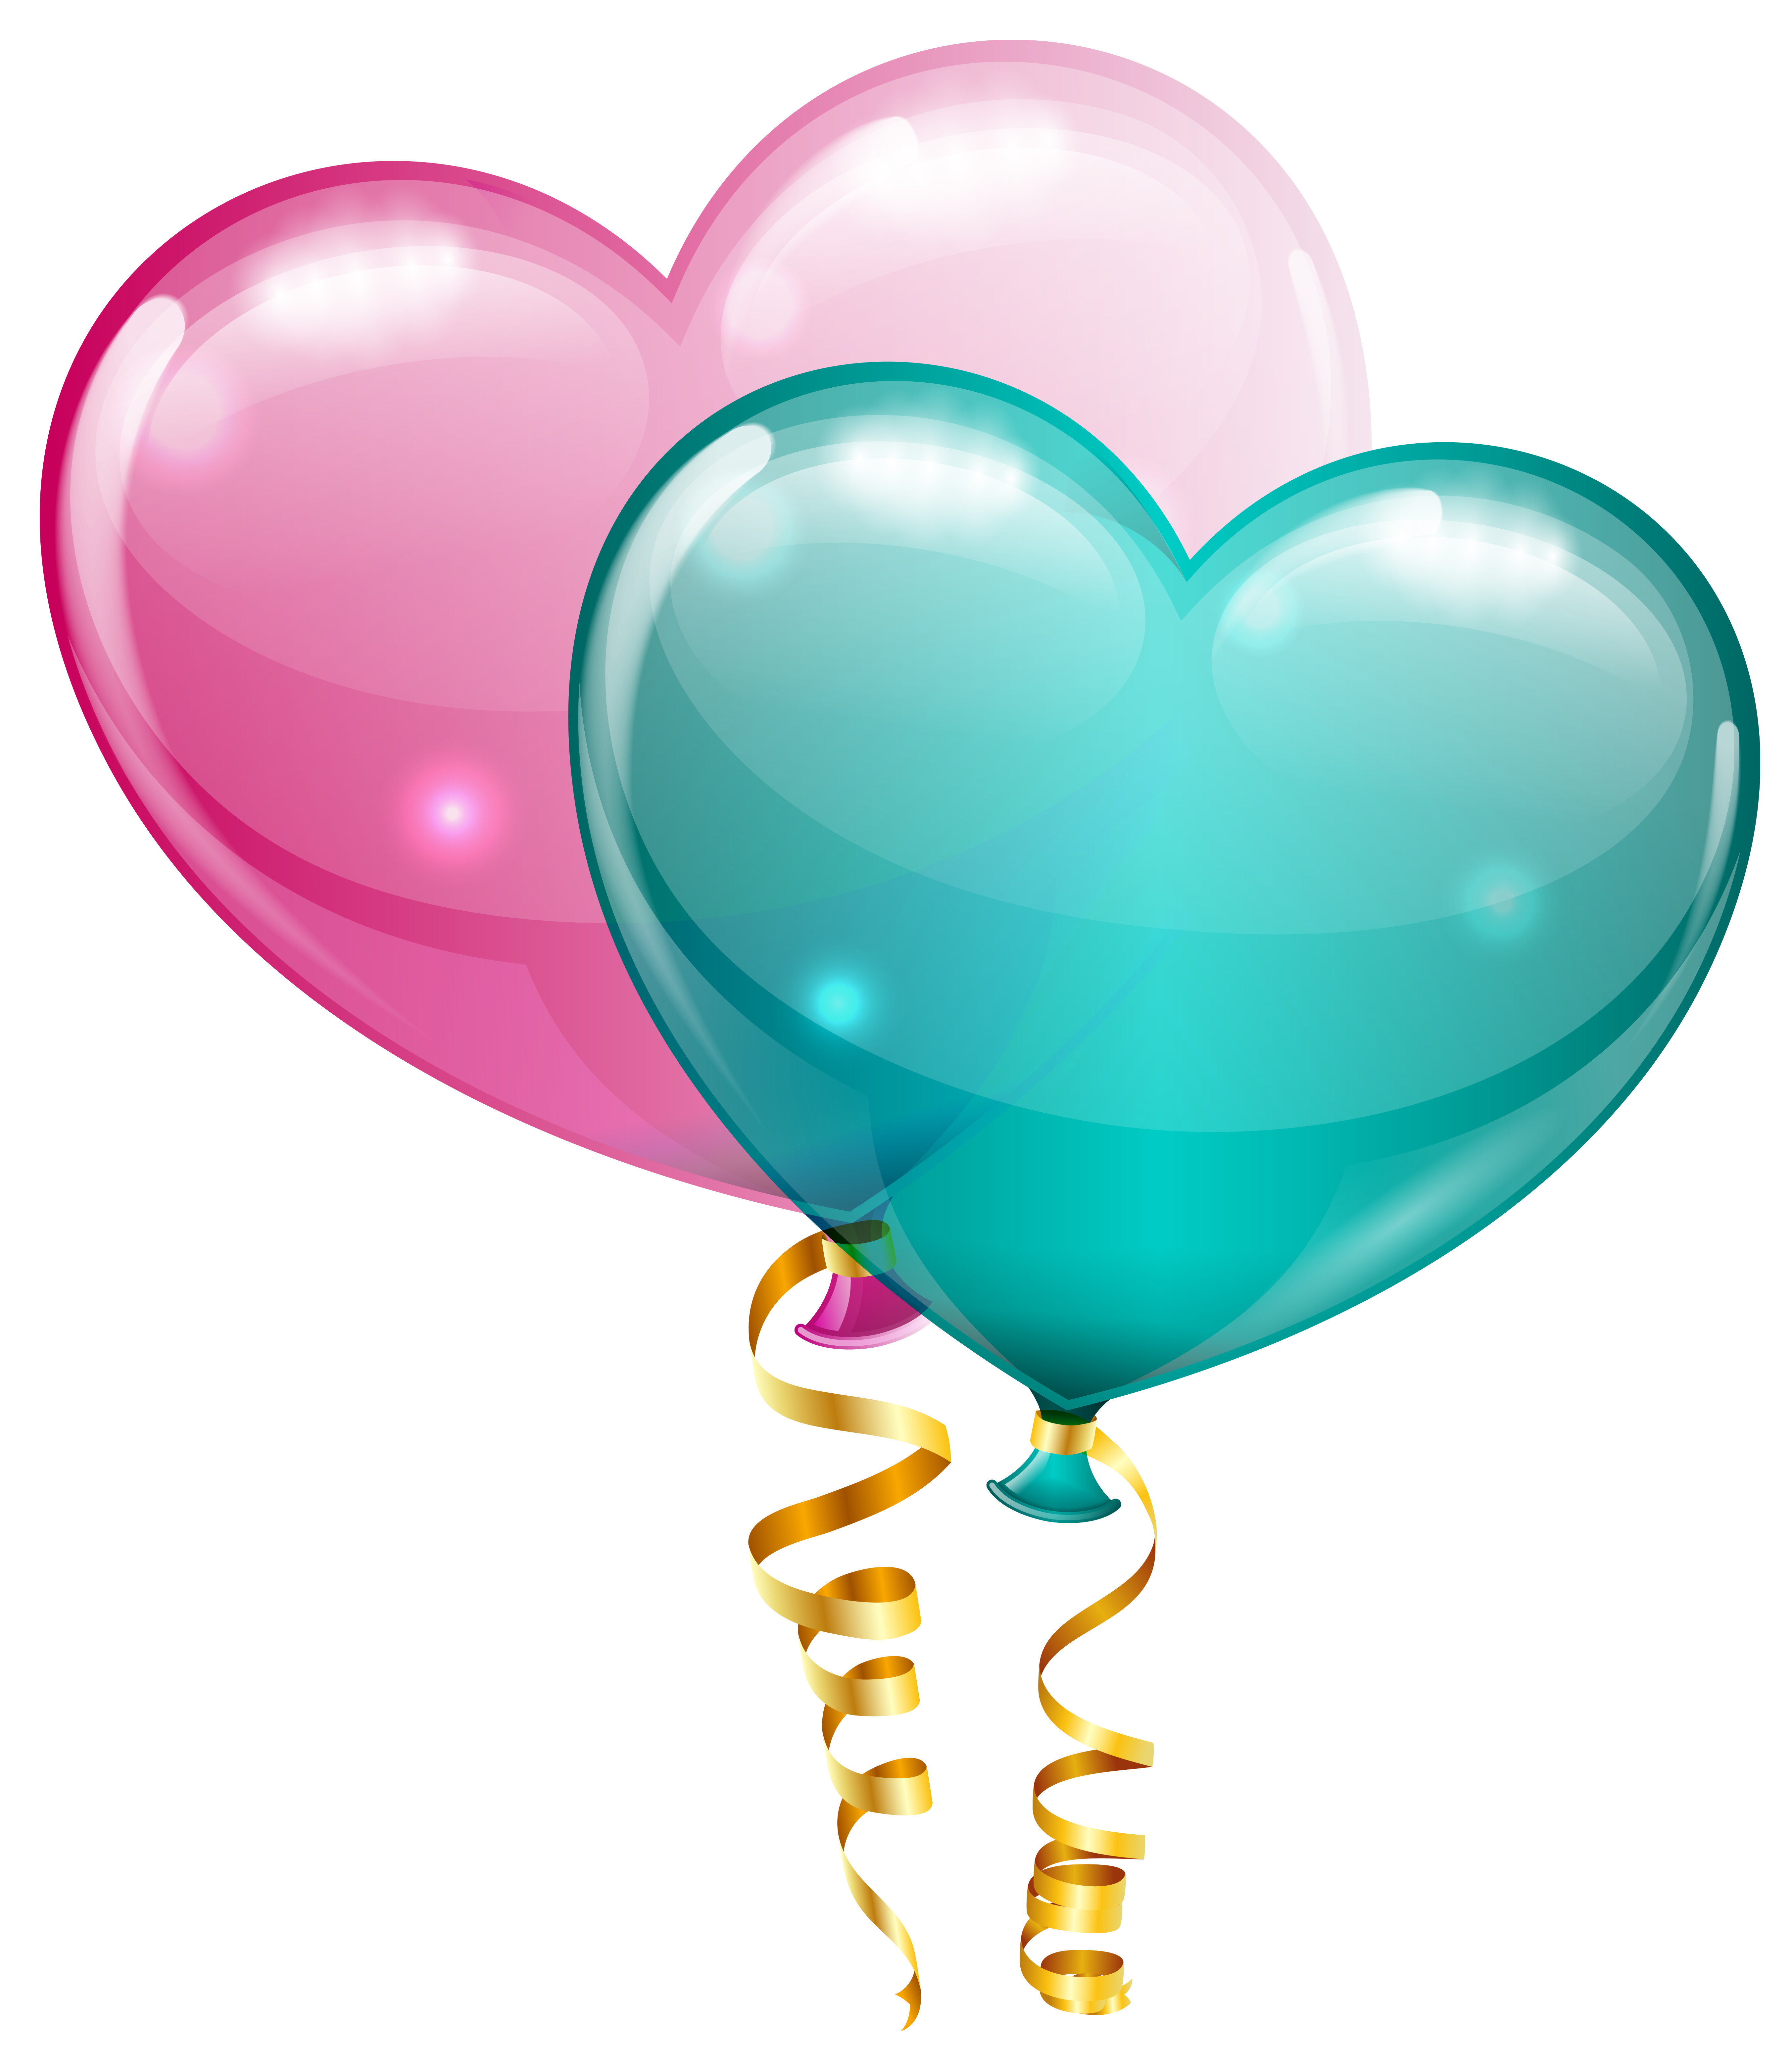 And blue heart balloons. Clipart balloon pink